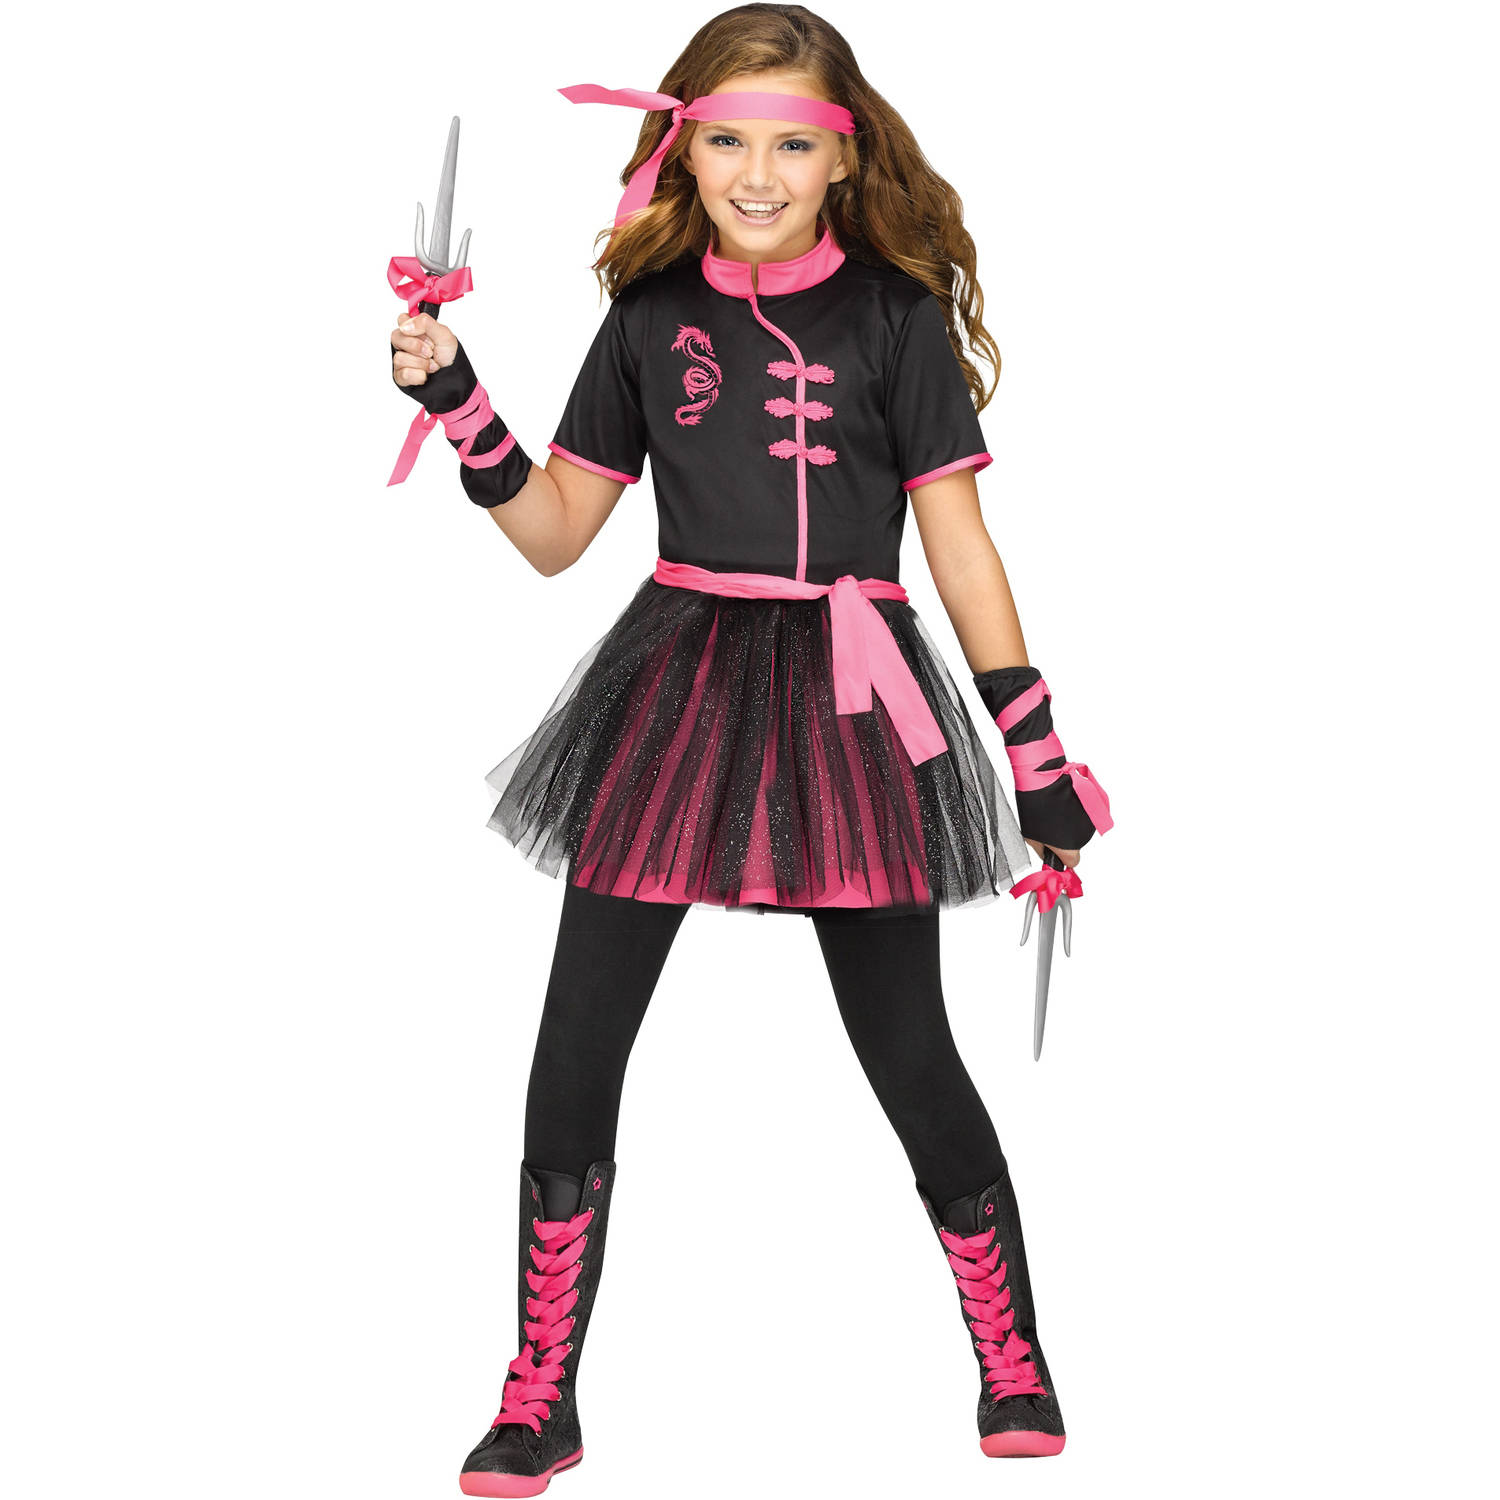 Ninja Miss Girls Child Halloween Costume